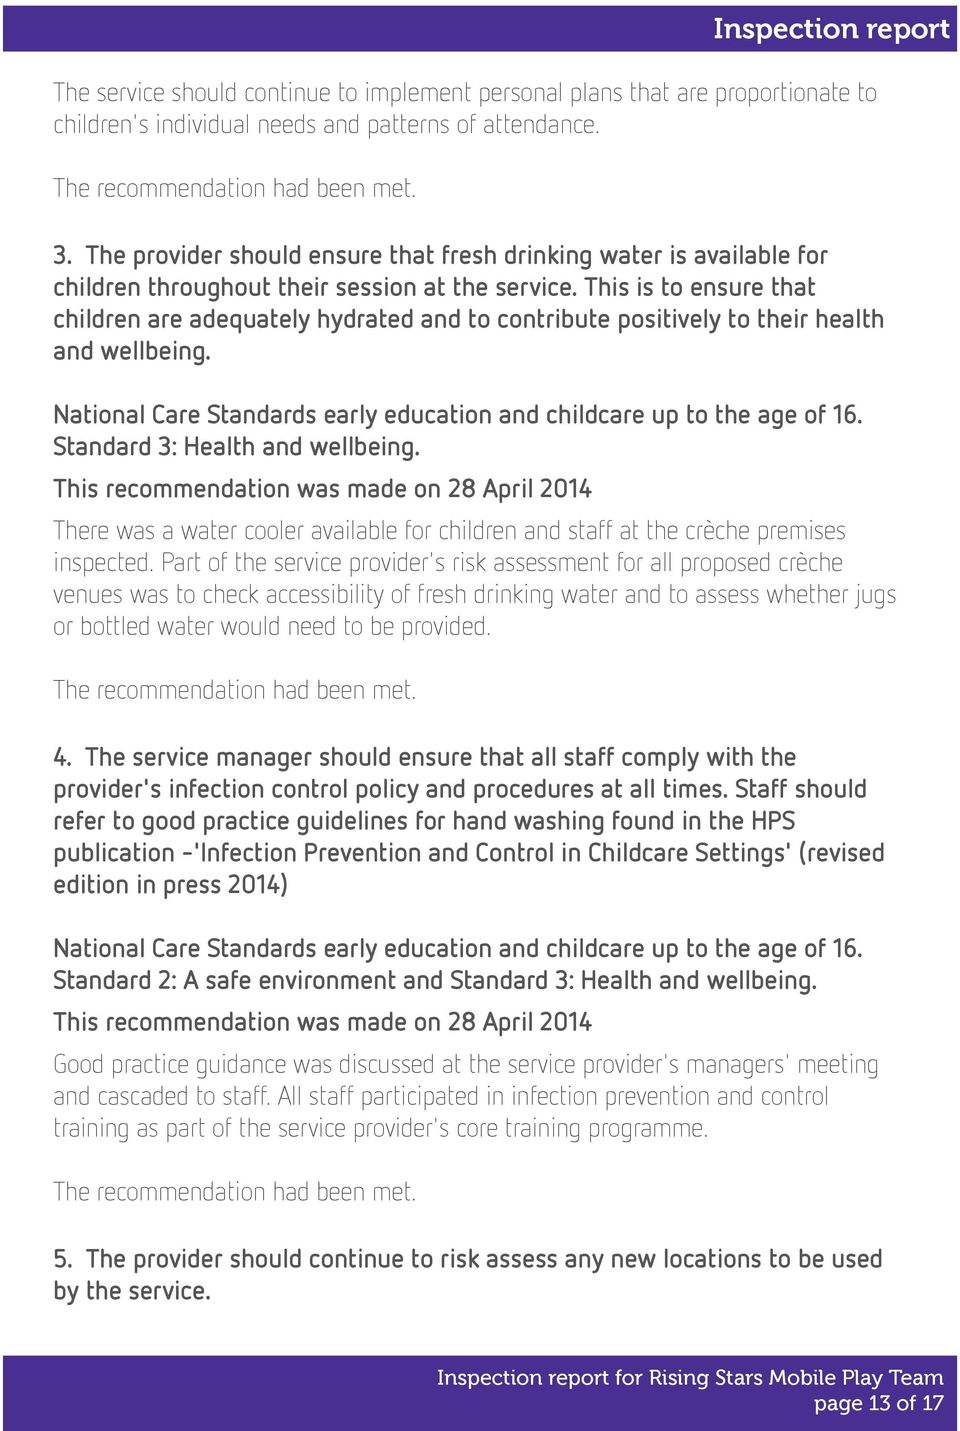 This is to ensure that children are adequately hydrated and to contribute positively to their health and wellbeing. National Care Standards early education and childcare up to the age of 16.